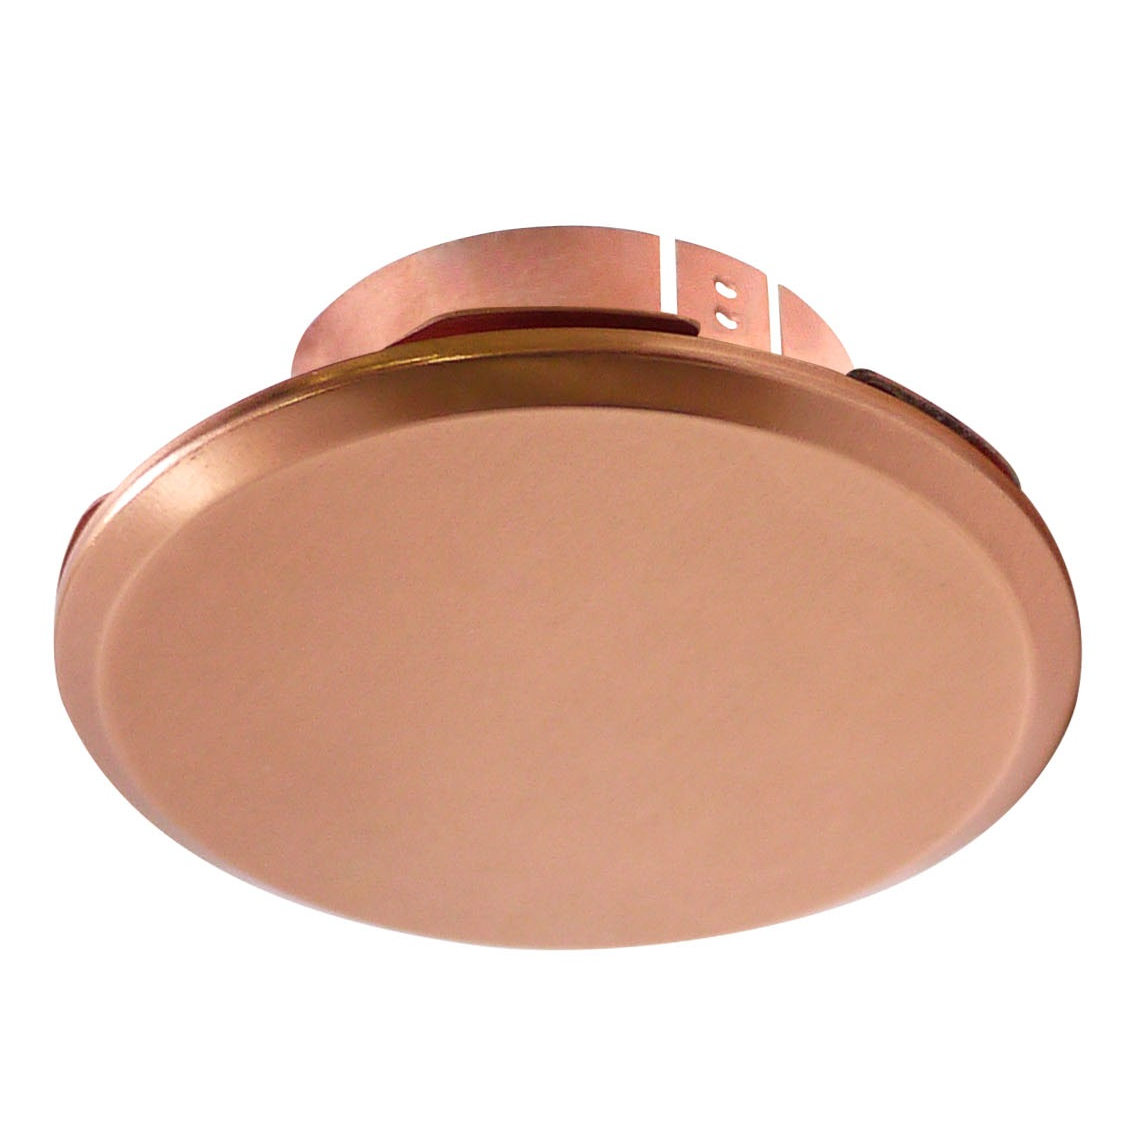 "Cover Plate for RC Sprinklers, Residential/Commercial, 3-1/4"" Round, Copper (Mirror Finish)"